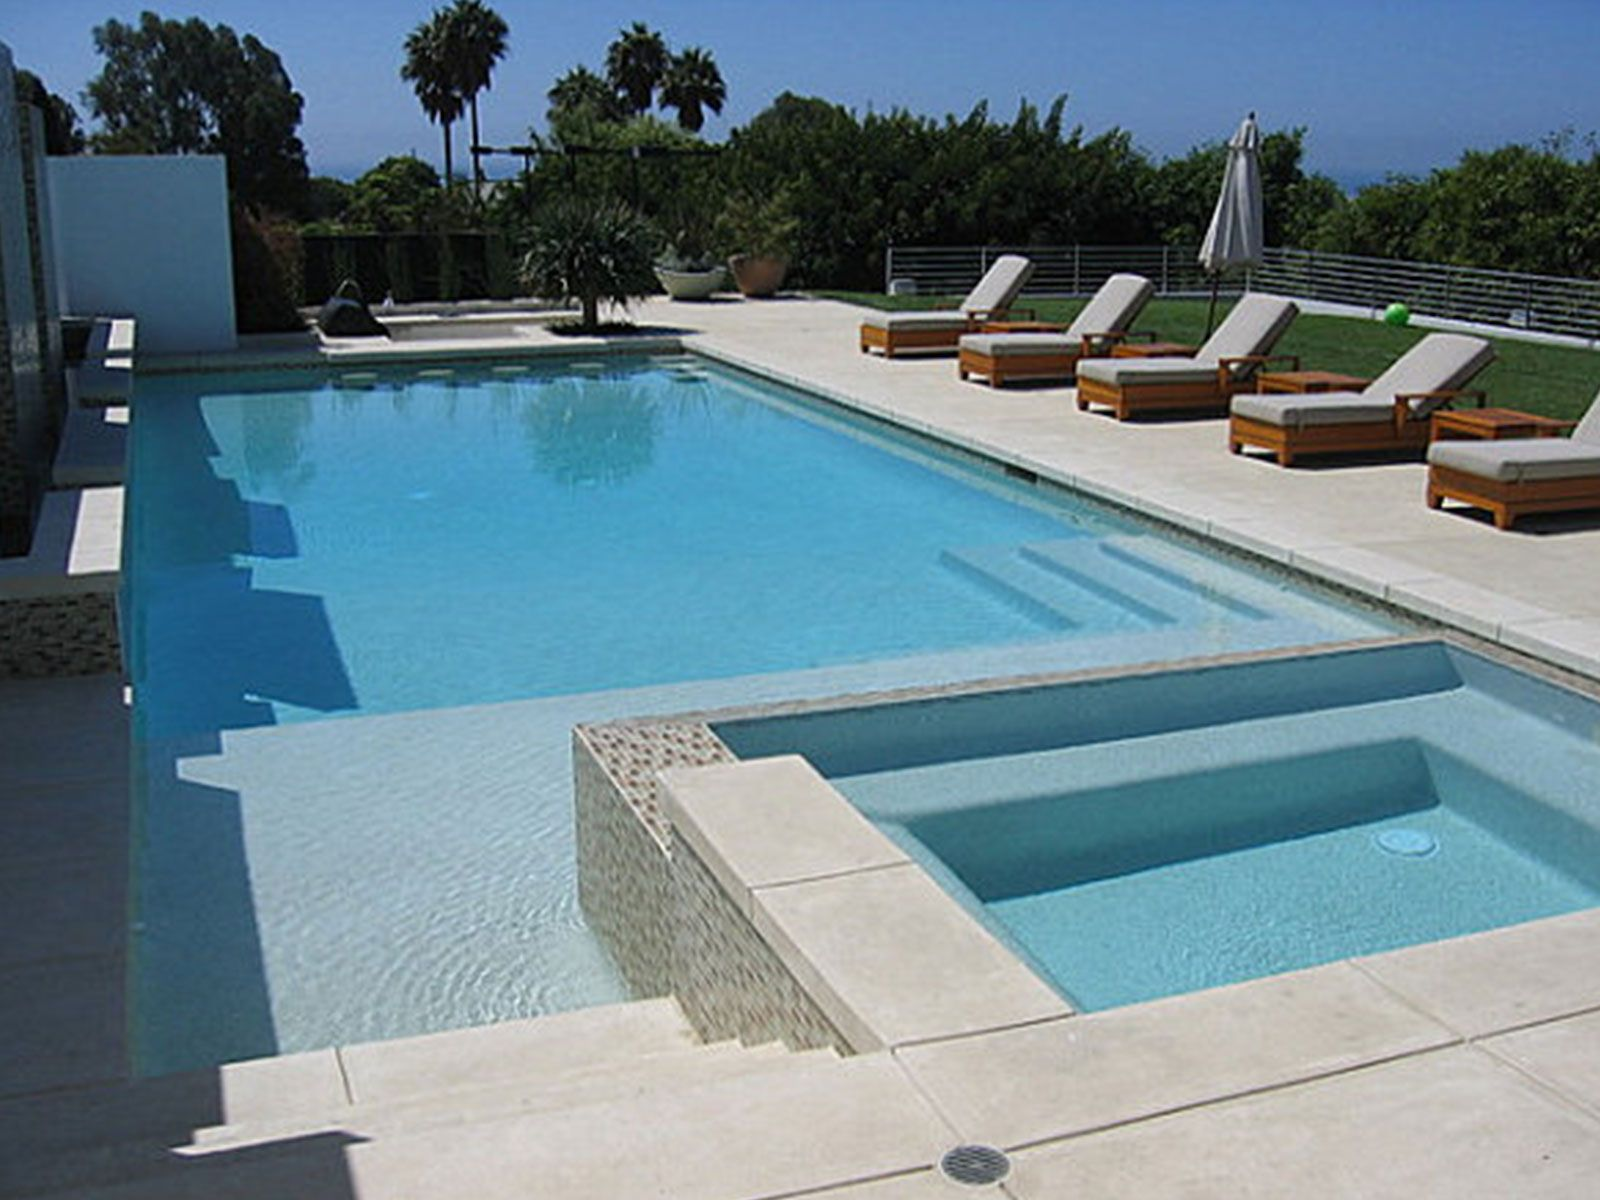 Simple swimming pool design image modern creative swimming modern swimming pools and spas pool - House with swimming pool design ...